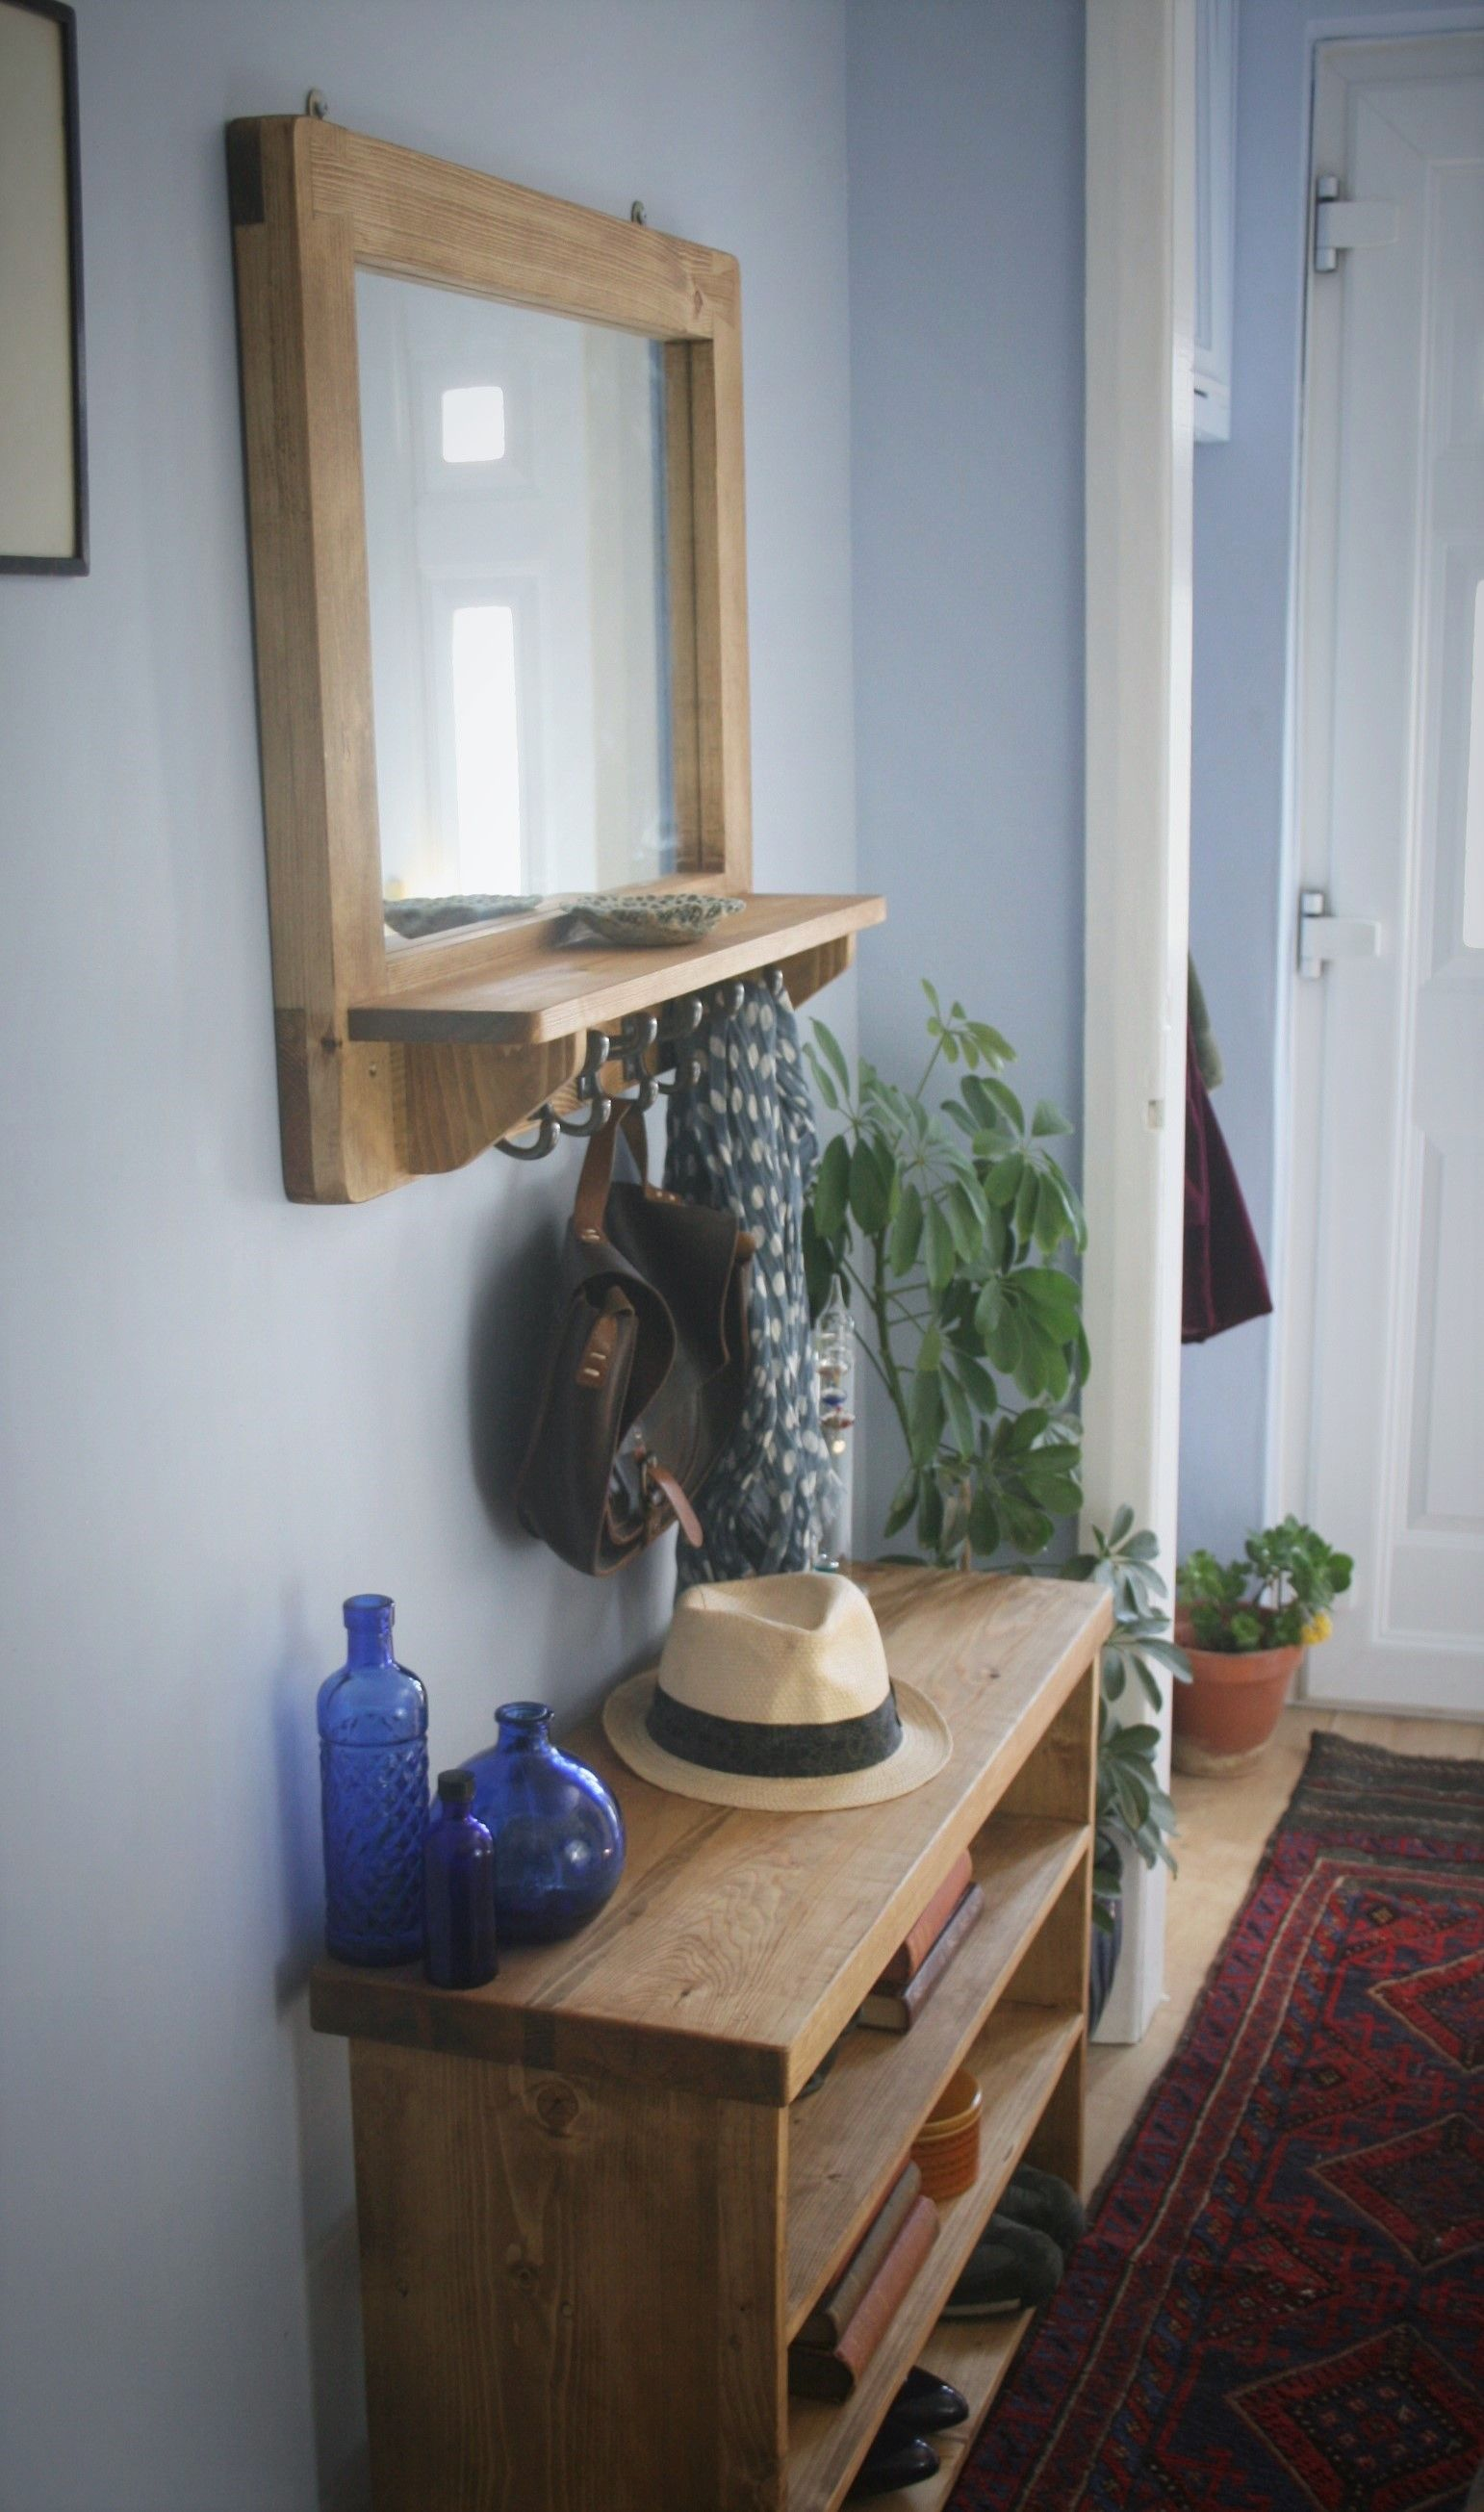 Hallway furniture with mirror  Add some custom handmade modern rustic charm to your hallway with